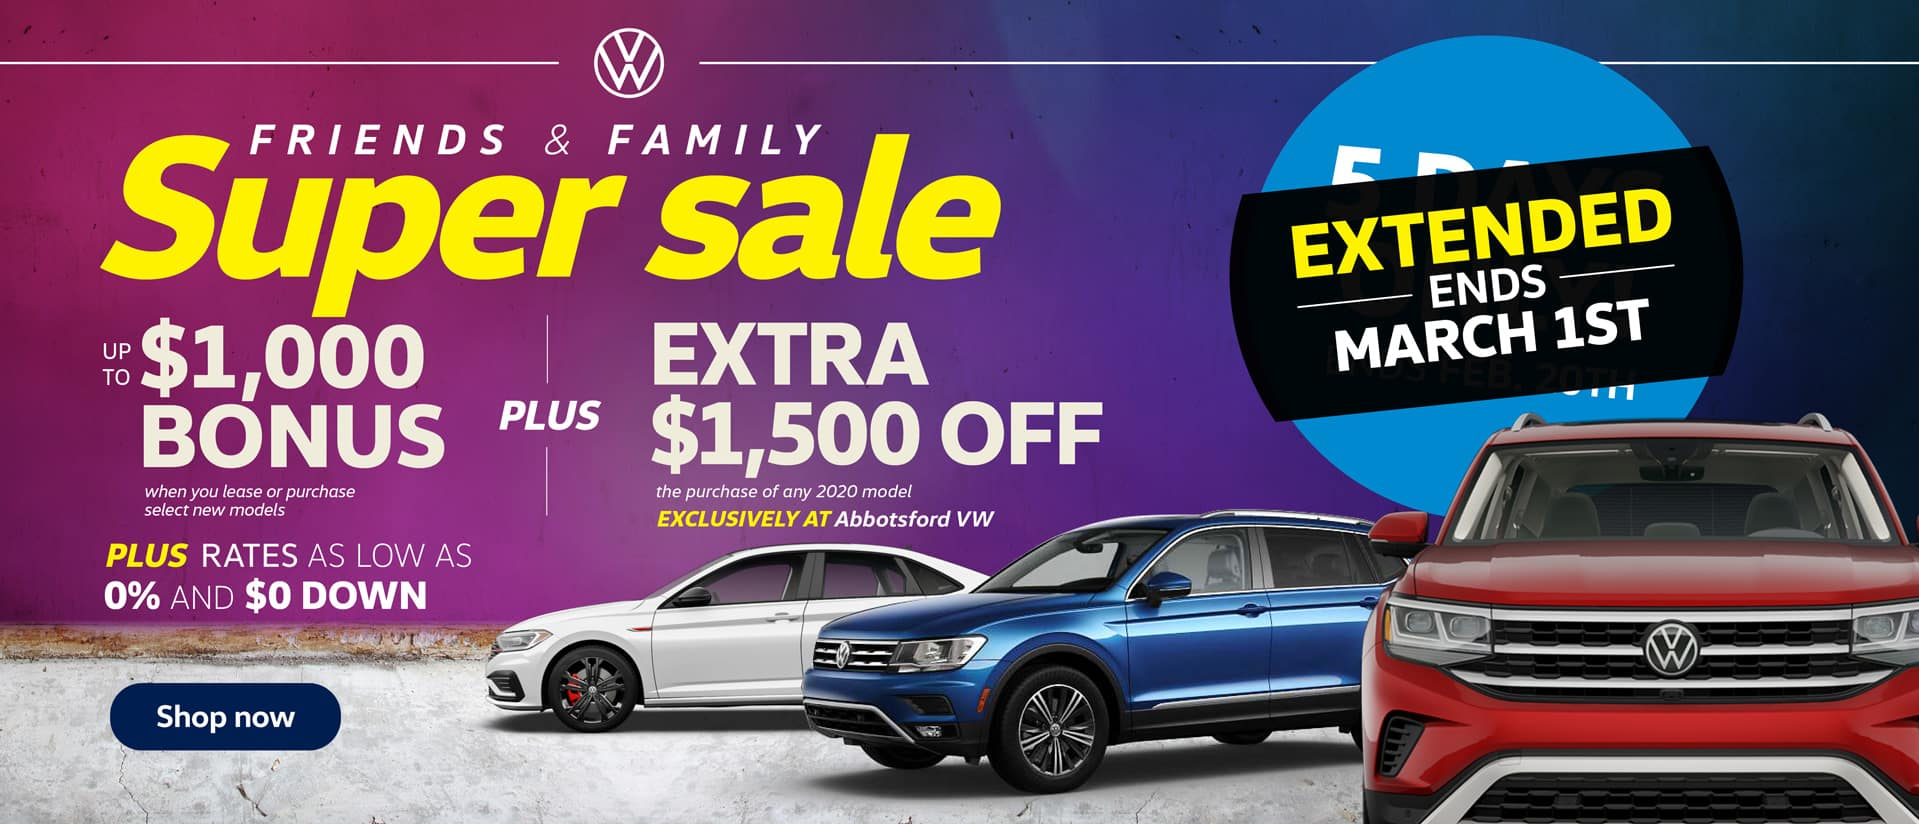 1516857_VW_FriendsFamily-SuperSale-EXTEND_WB_AVW